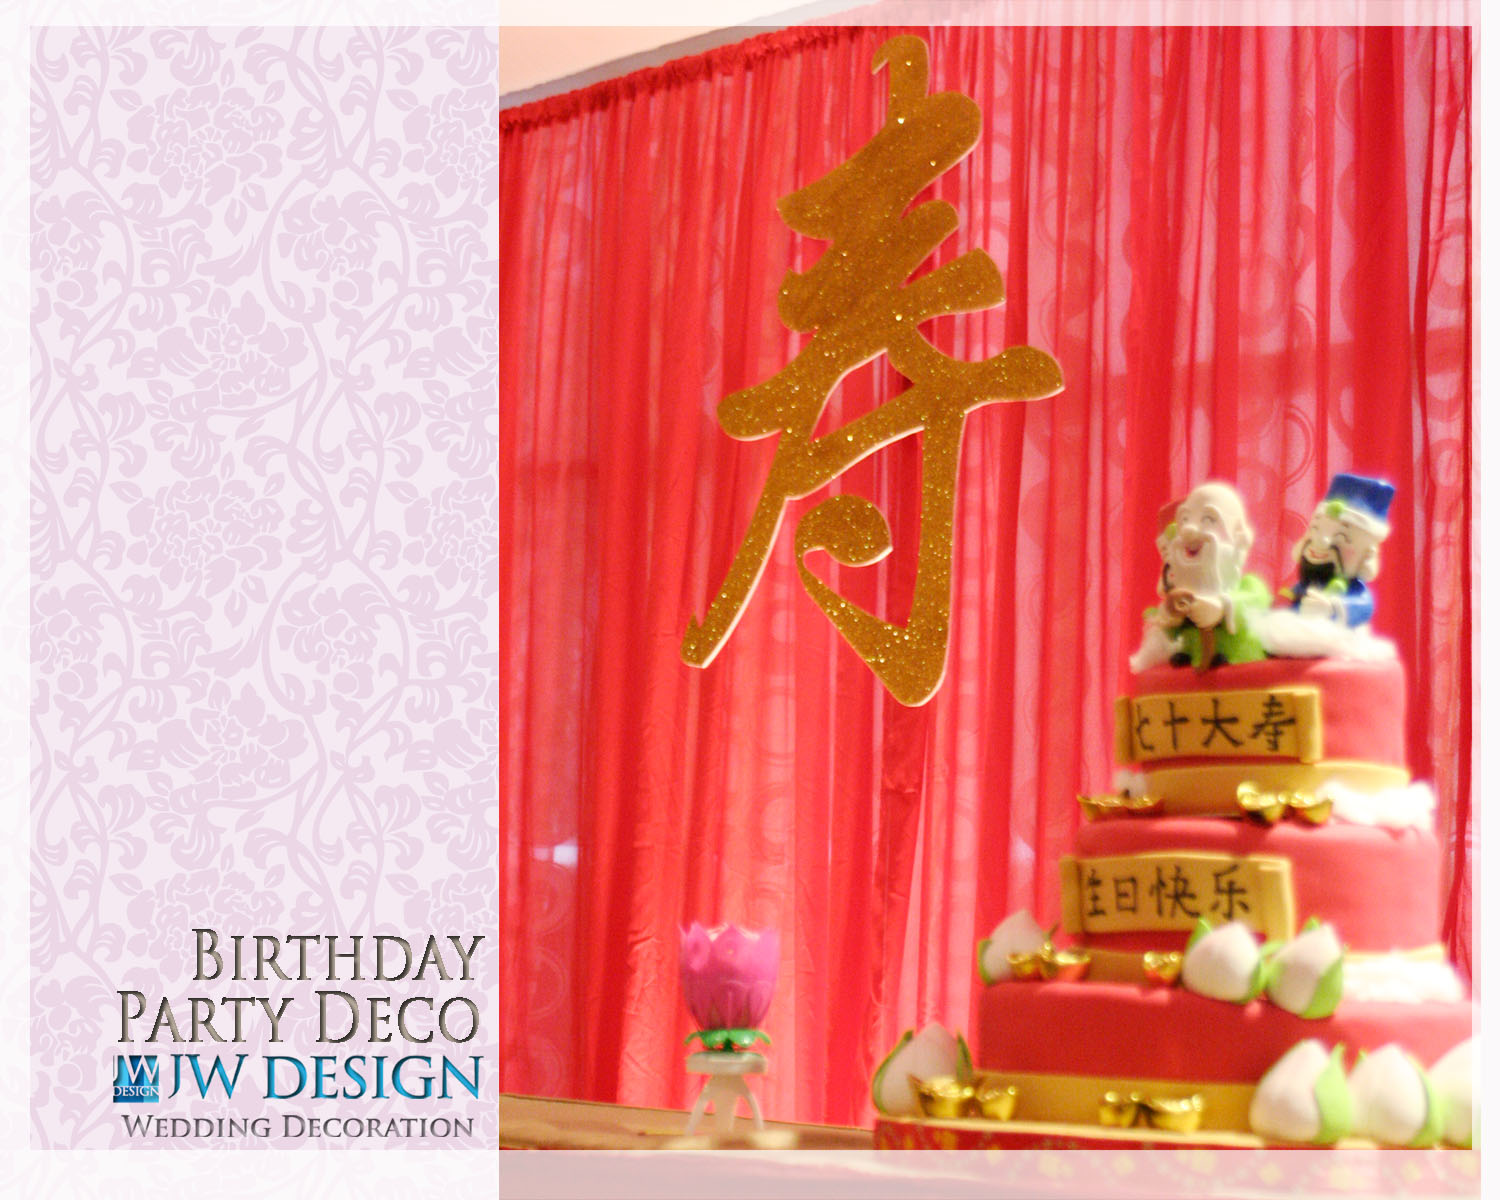 Jw design wedding decoration june 2013 for 70th birthday decoration